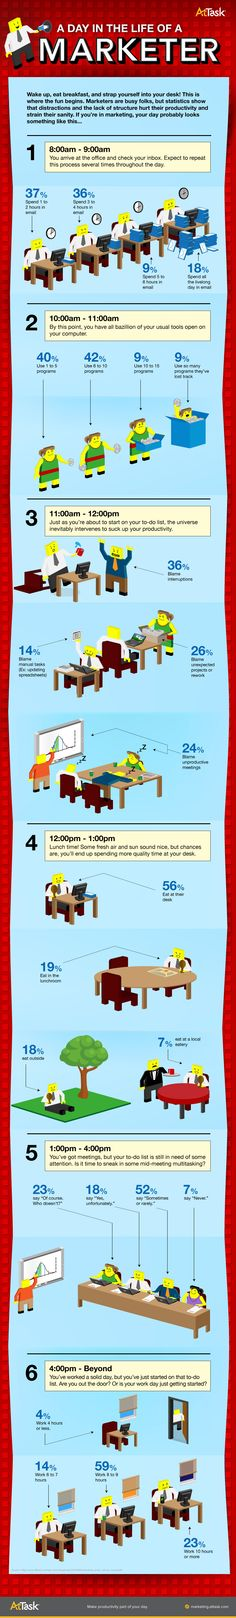 A Day in the Life of a Marketer